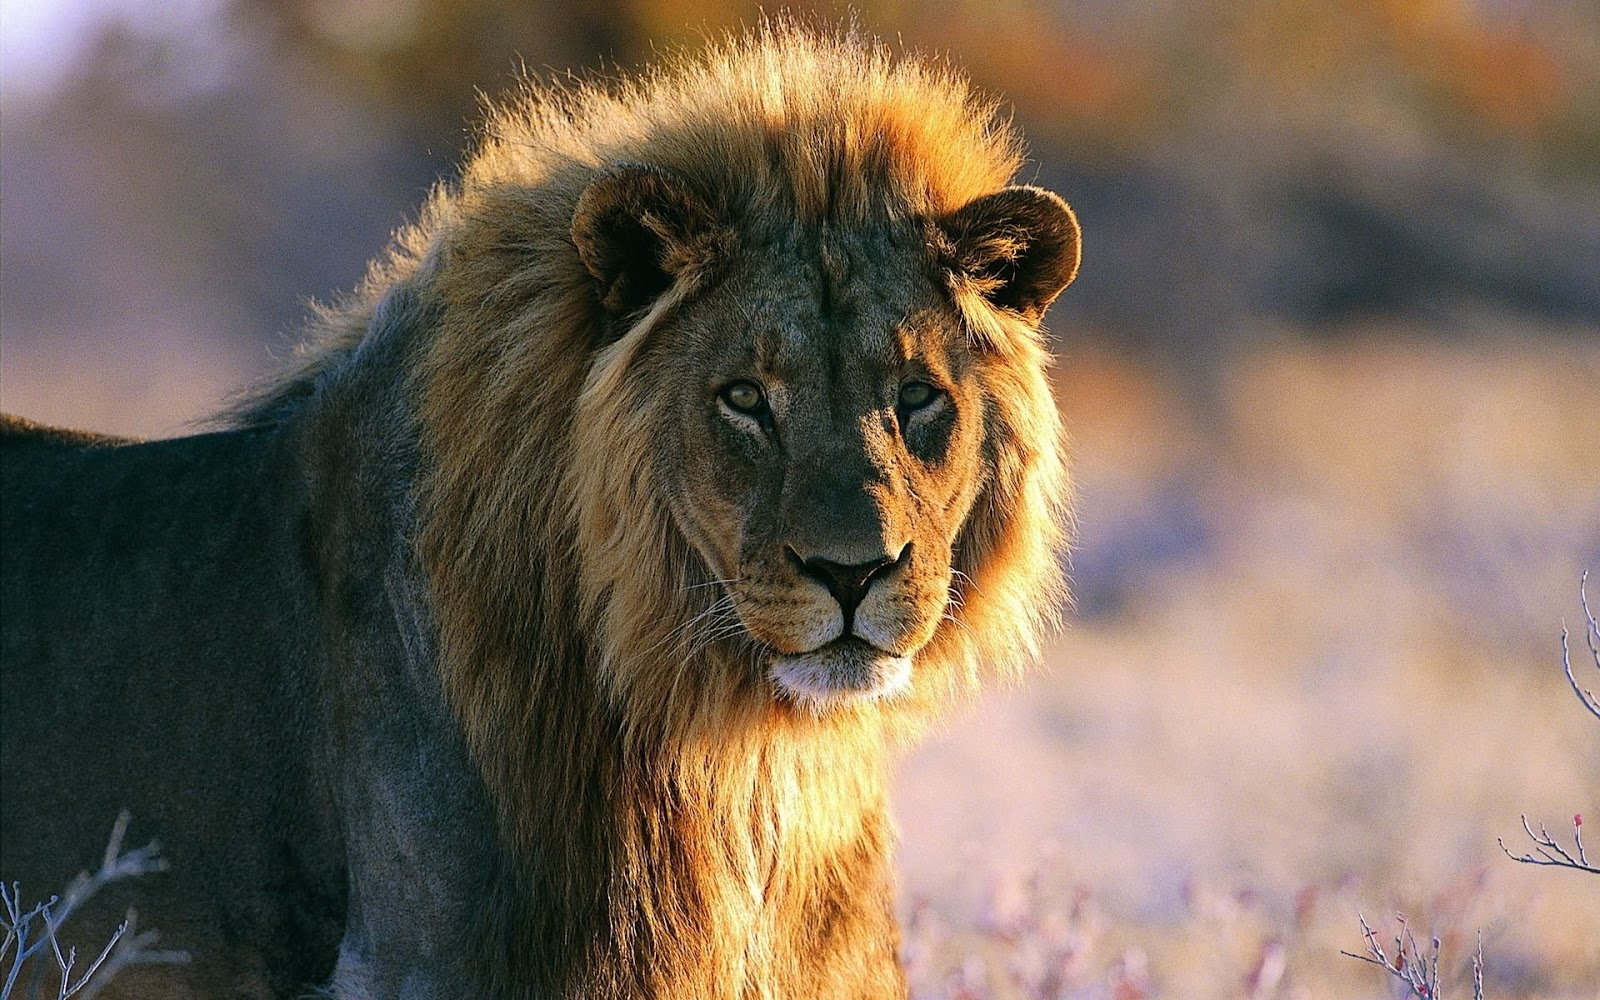 African Lion New Hd Wallpapers 2013   Beautiful And Dangerous Animals/Birds Hd Wallpapers